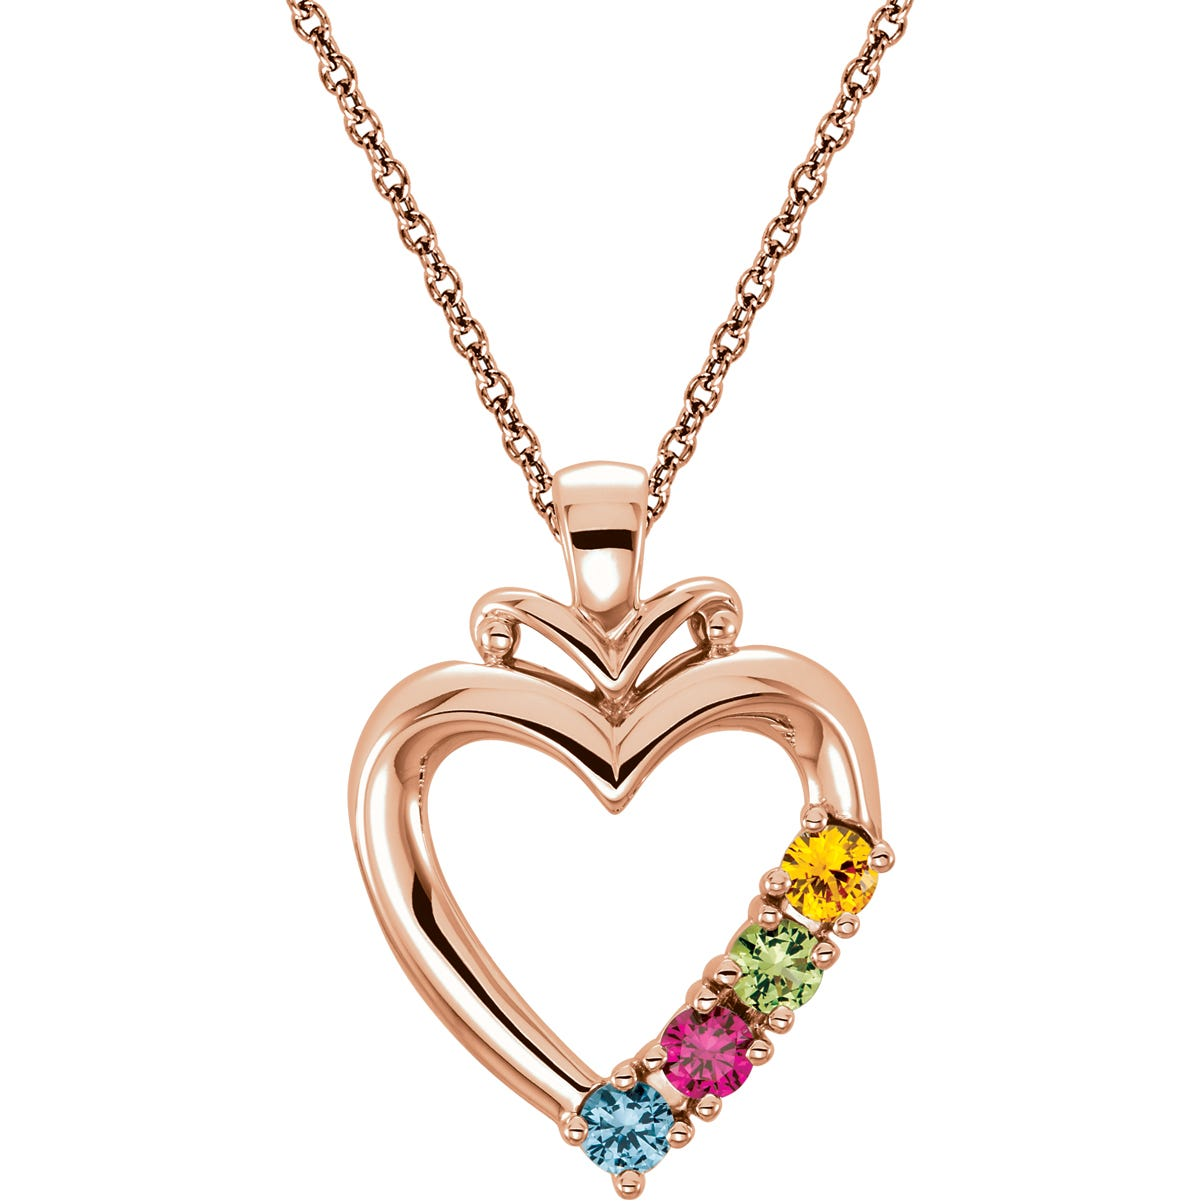 4-Stone Family Heart Pendant in 14k Rose Gold